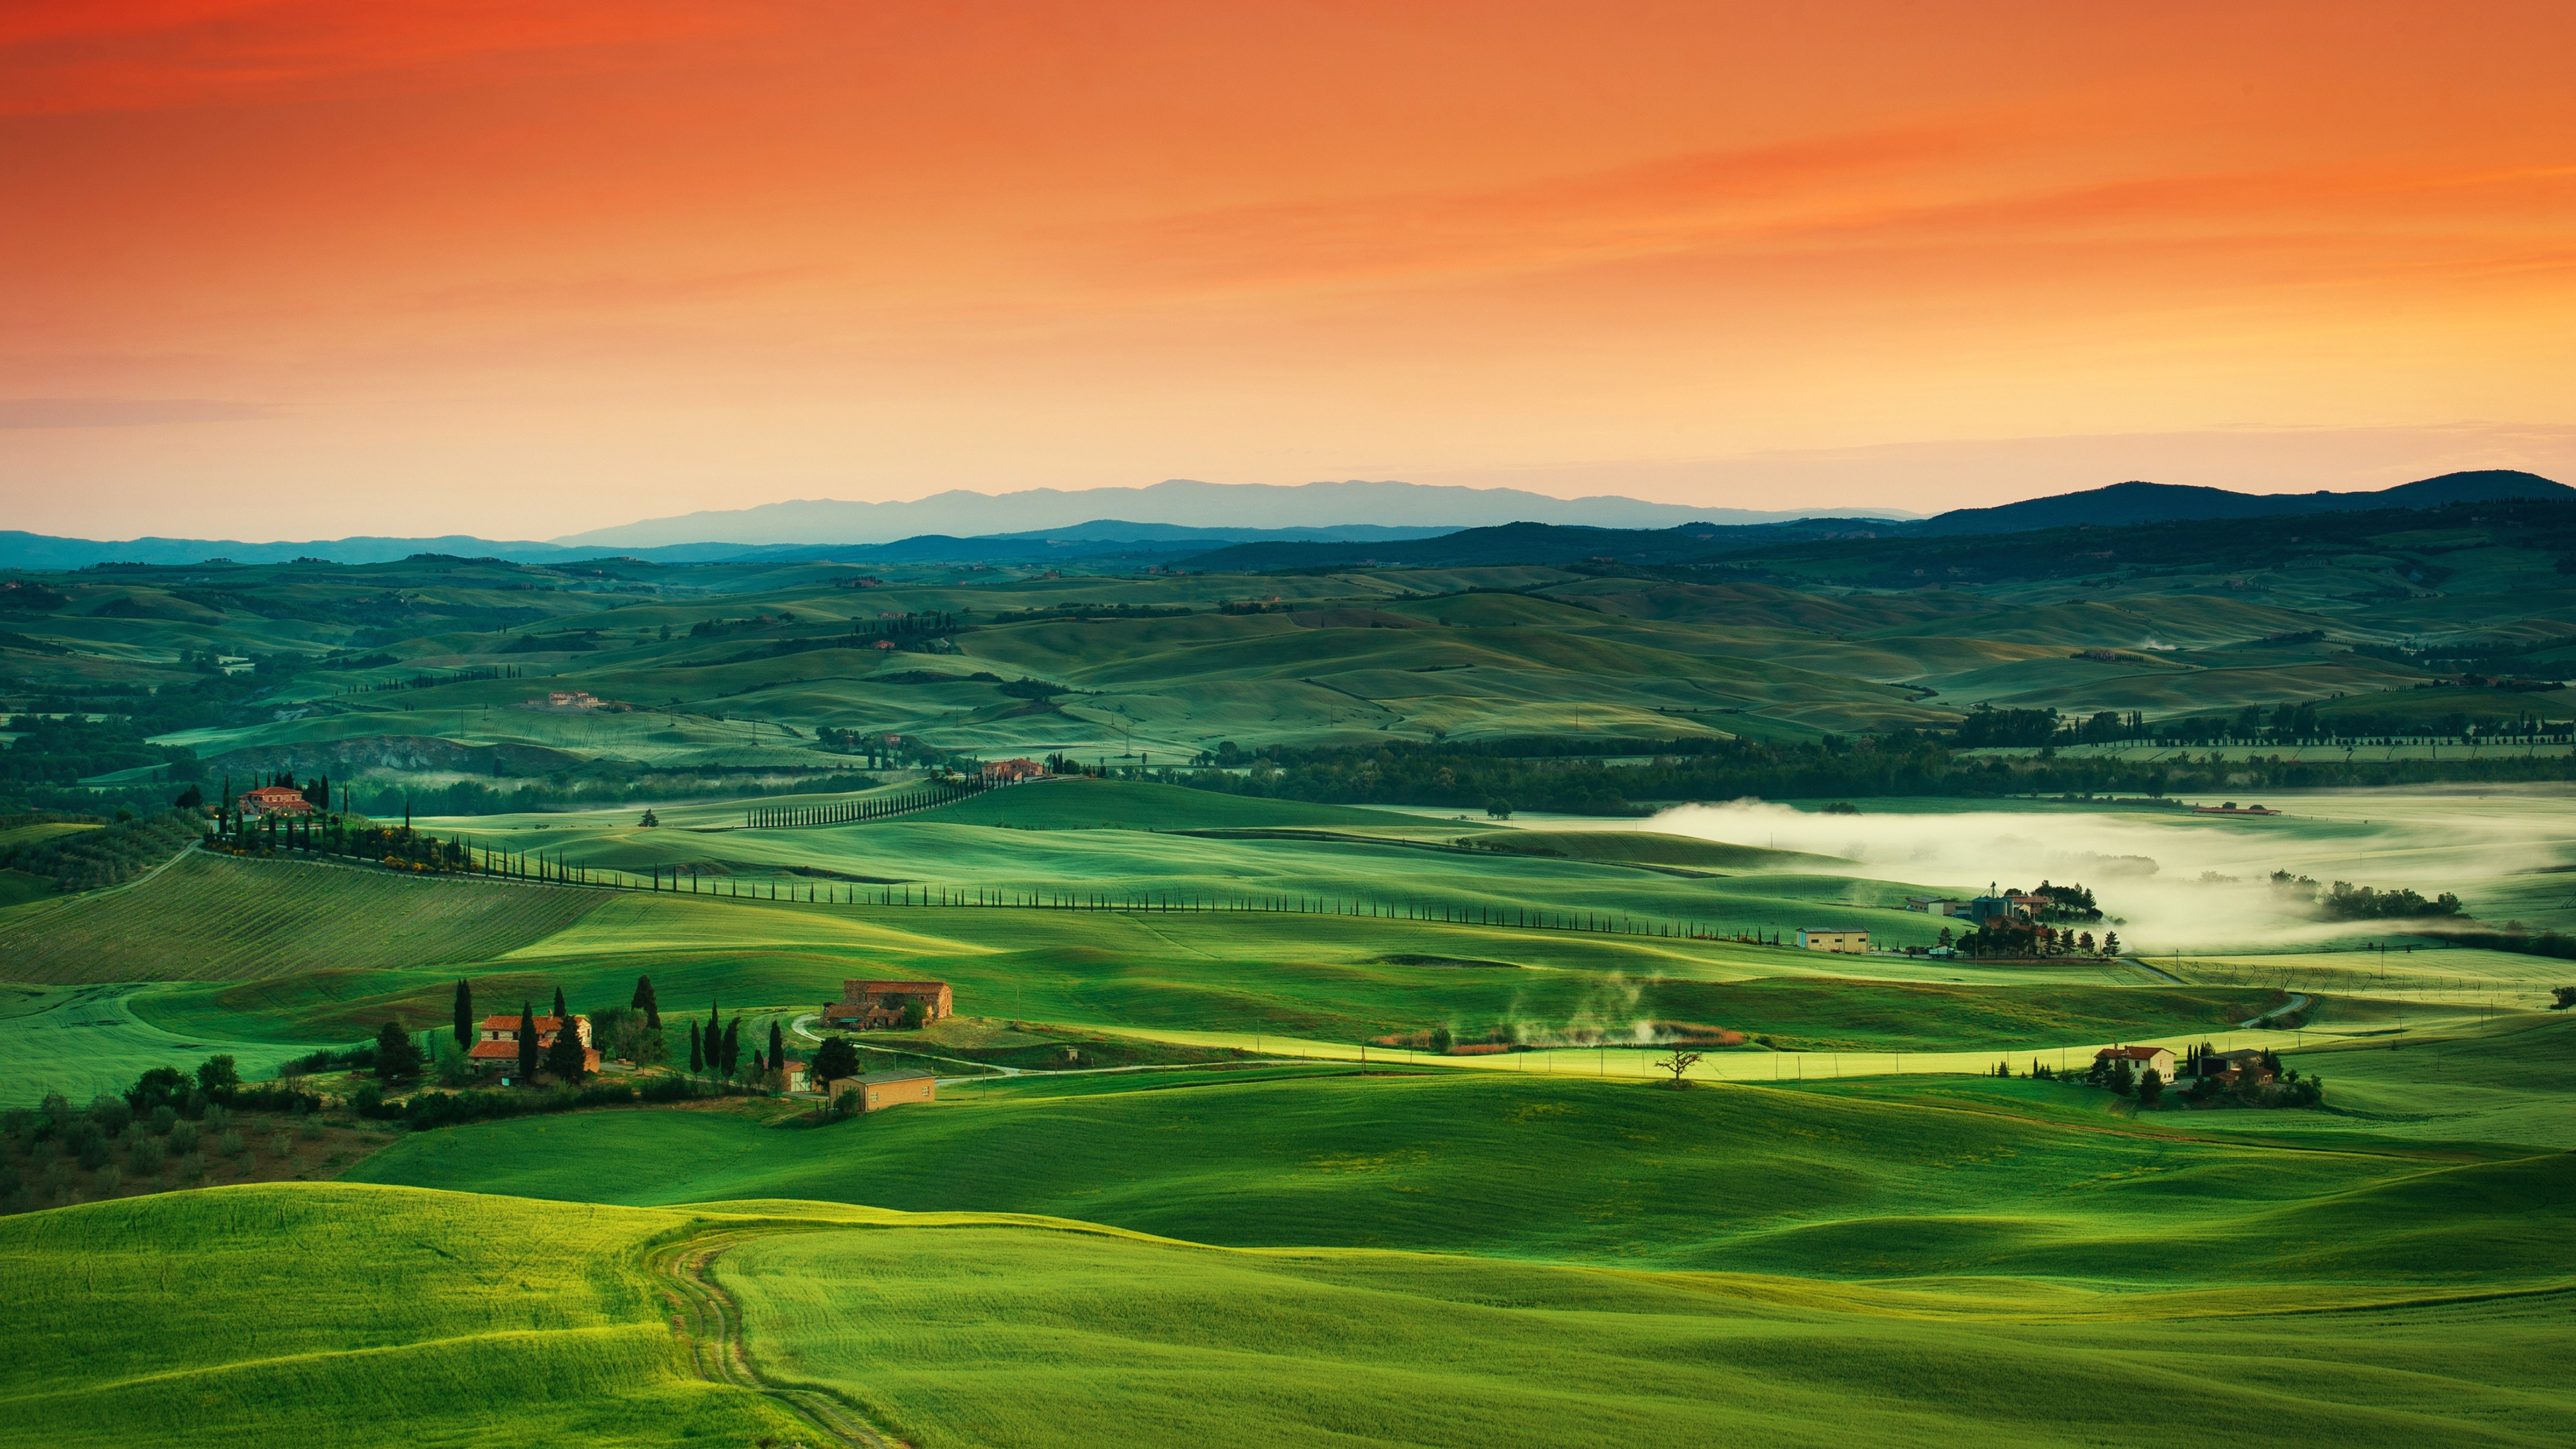 Tuscany Landscape Photography Background 4k 3840x2160